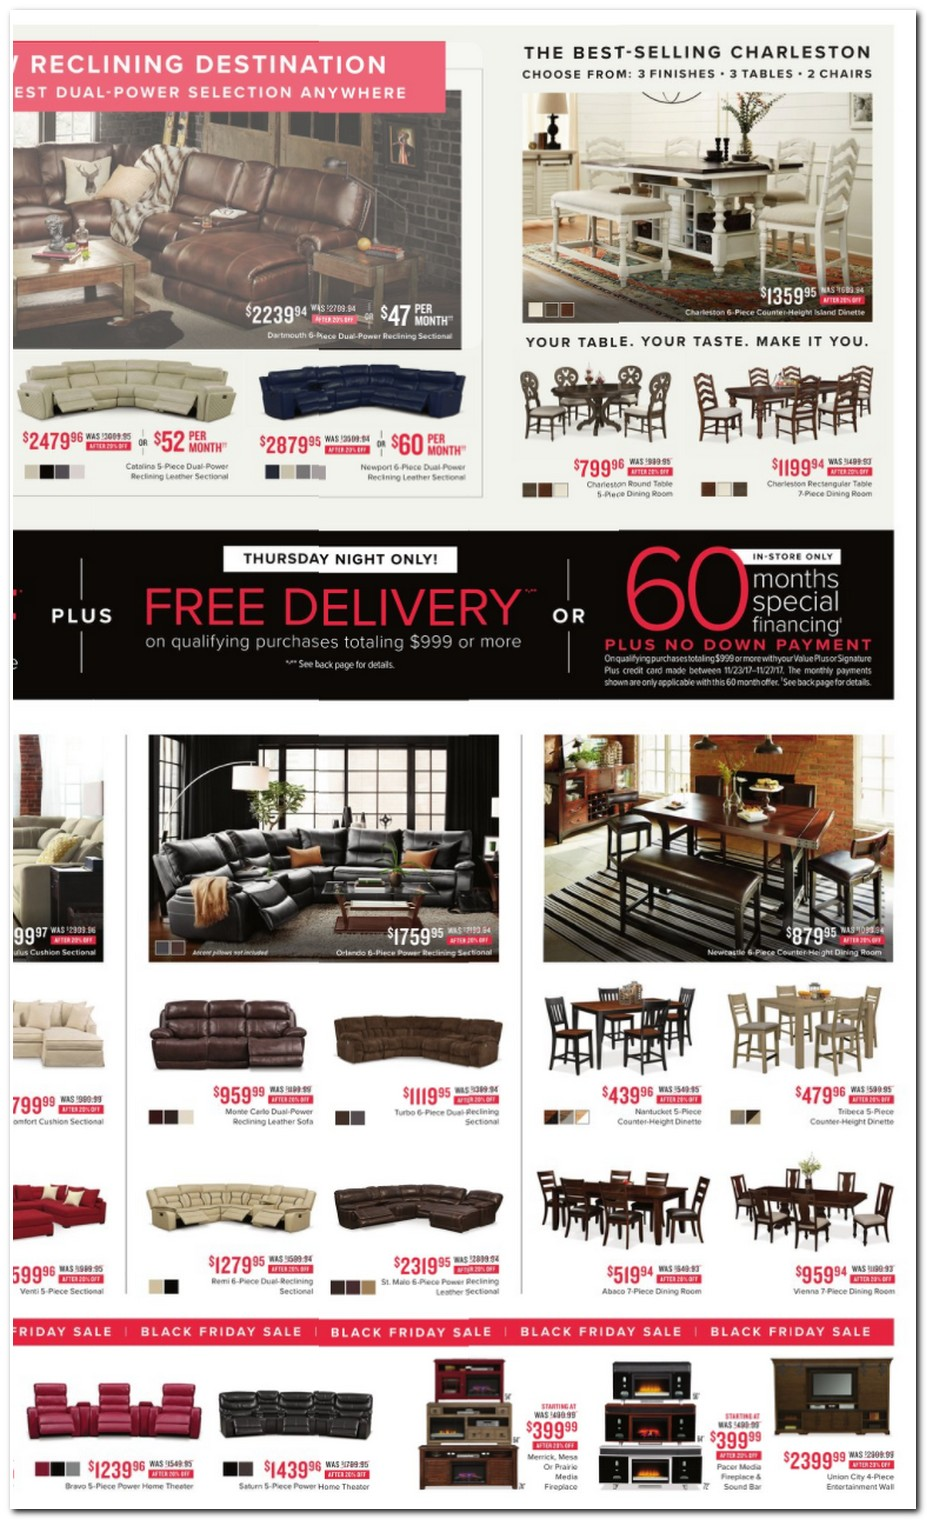 Value City Furniture Black Friday Ads Sales Deals 2017 Promo Codes Deals March 2018